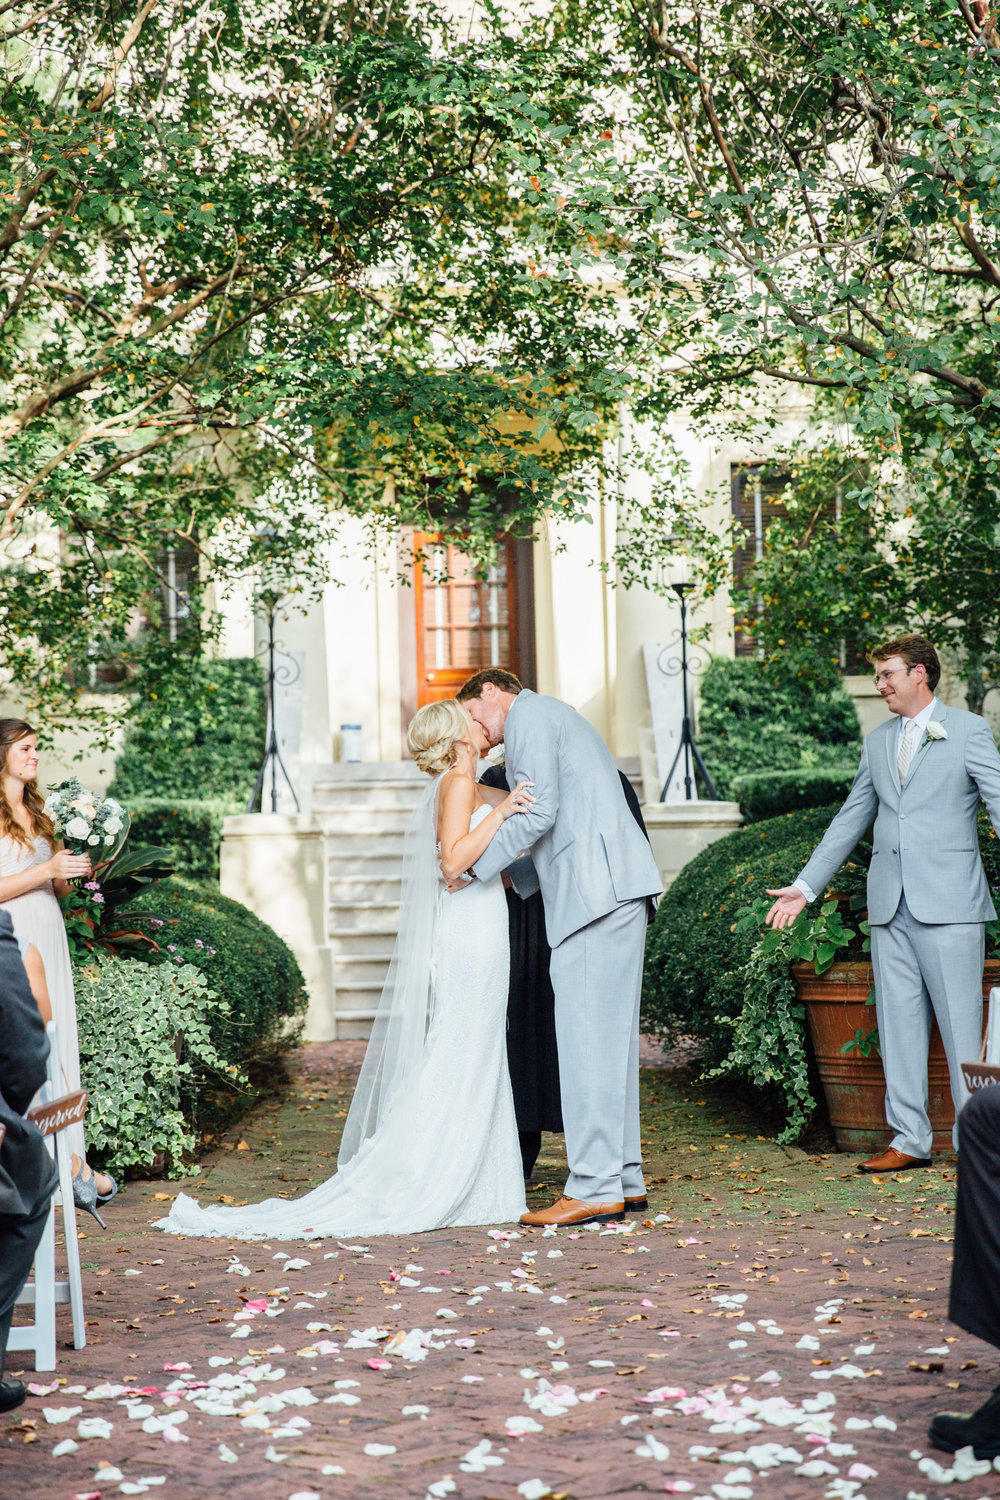 anna-benton-photography-savannah-bridal-boutique-ivory-and-beau-bridal-boutique-ti-adora-7552-lace-wedding-dress-jaclyn-jordan-anne-veil-southern-wedding-savannah-wedding-coastal-wedidng-savannah-wedding-planner-savannah-florist-savannah-weddings-12.jpg